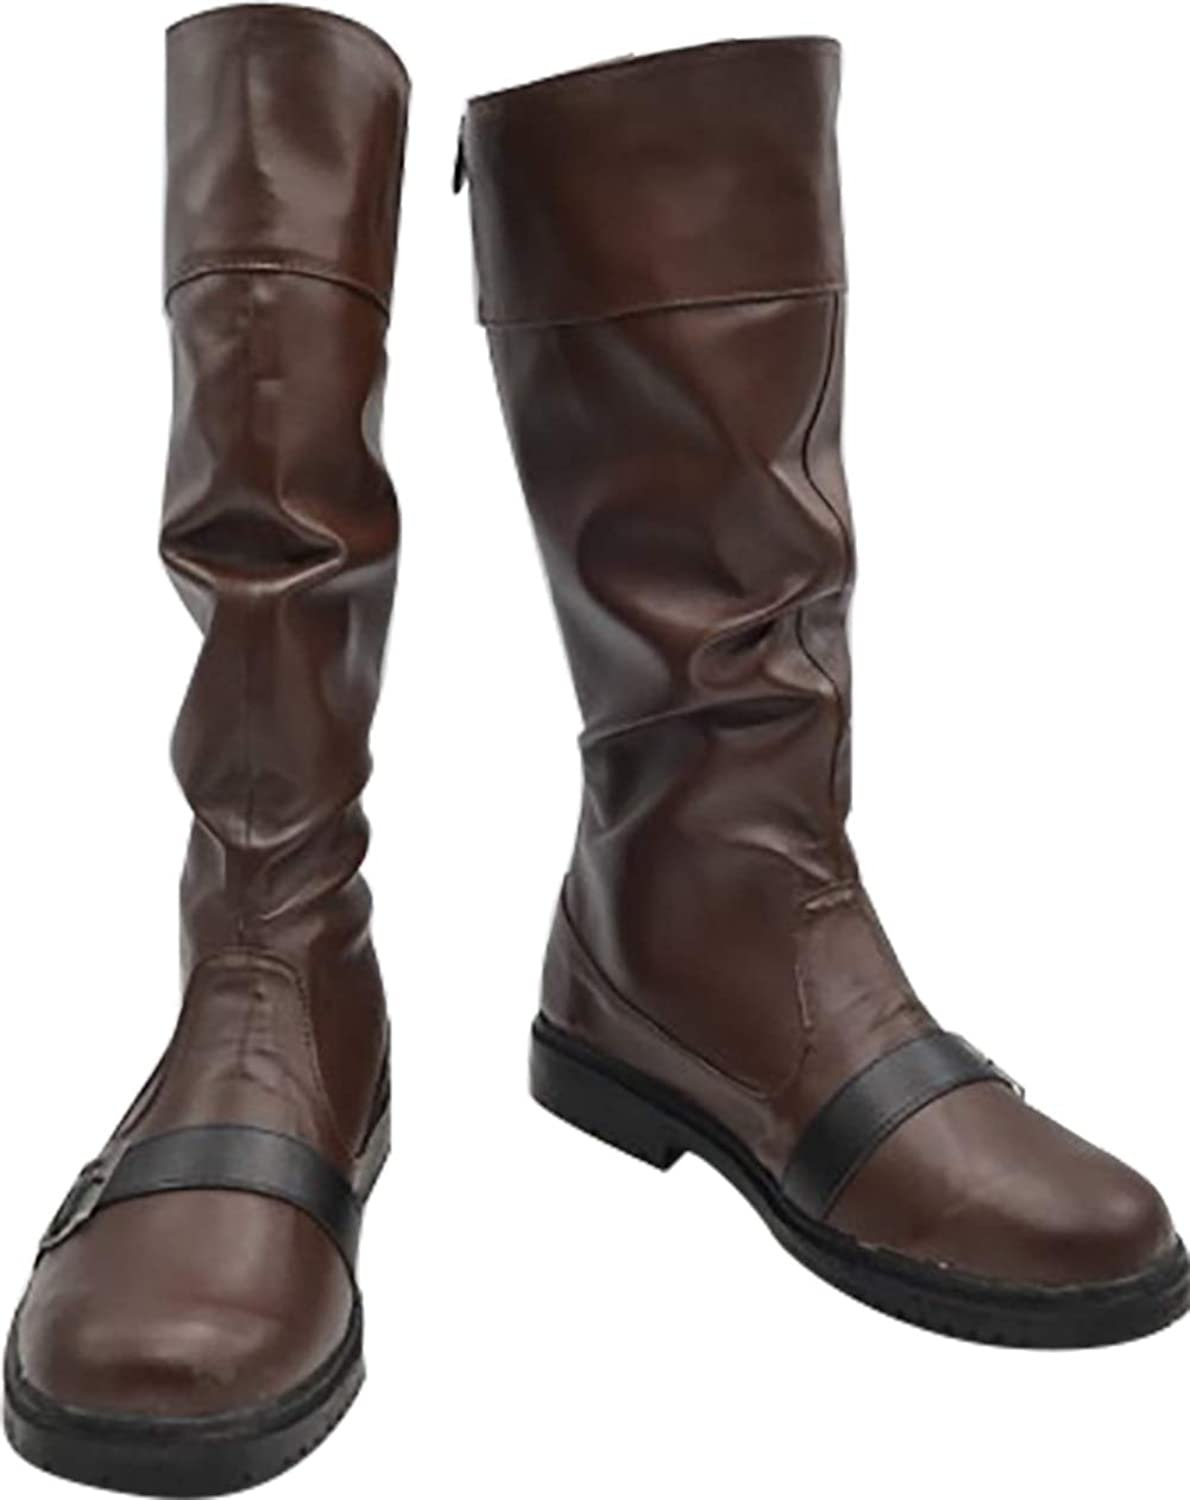 GSFDHDJS Cosplay Boots shoes for Noragami YATO